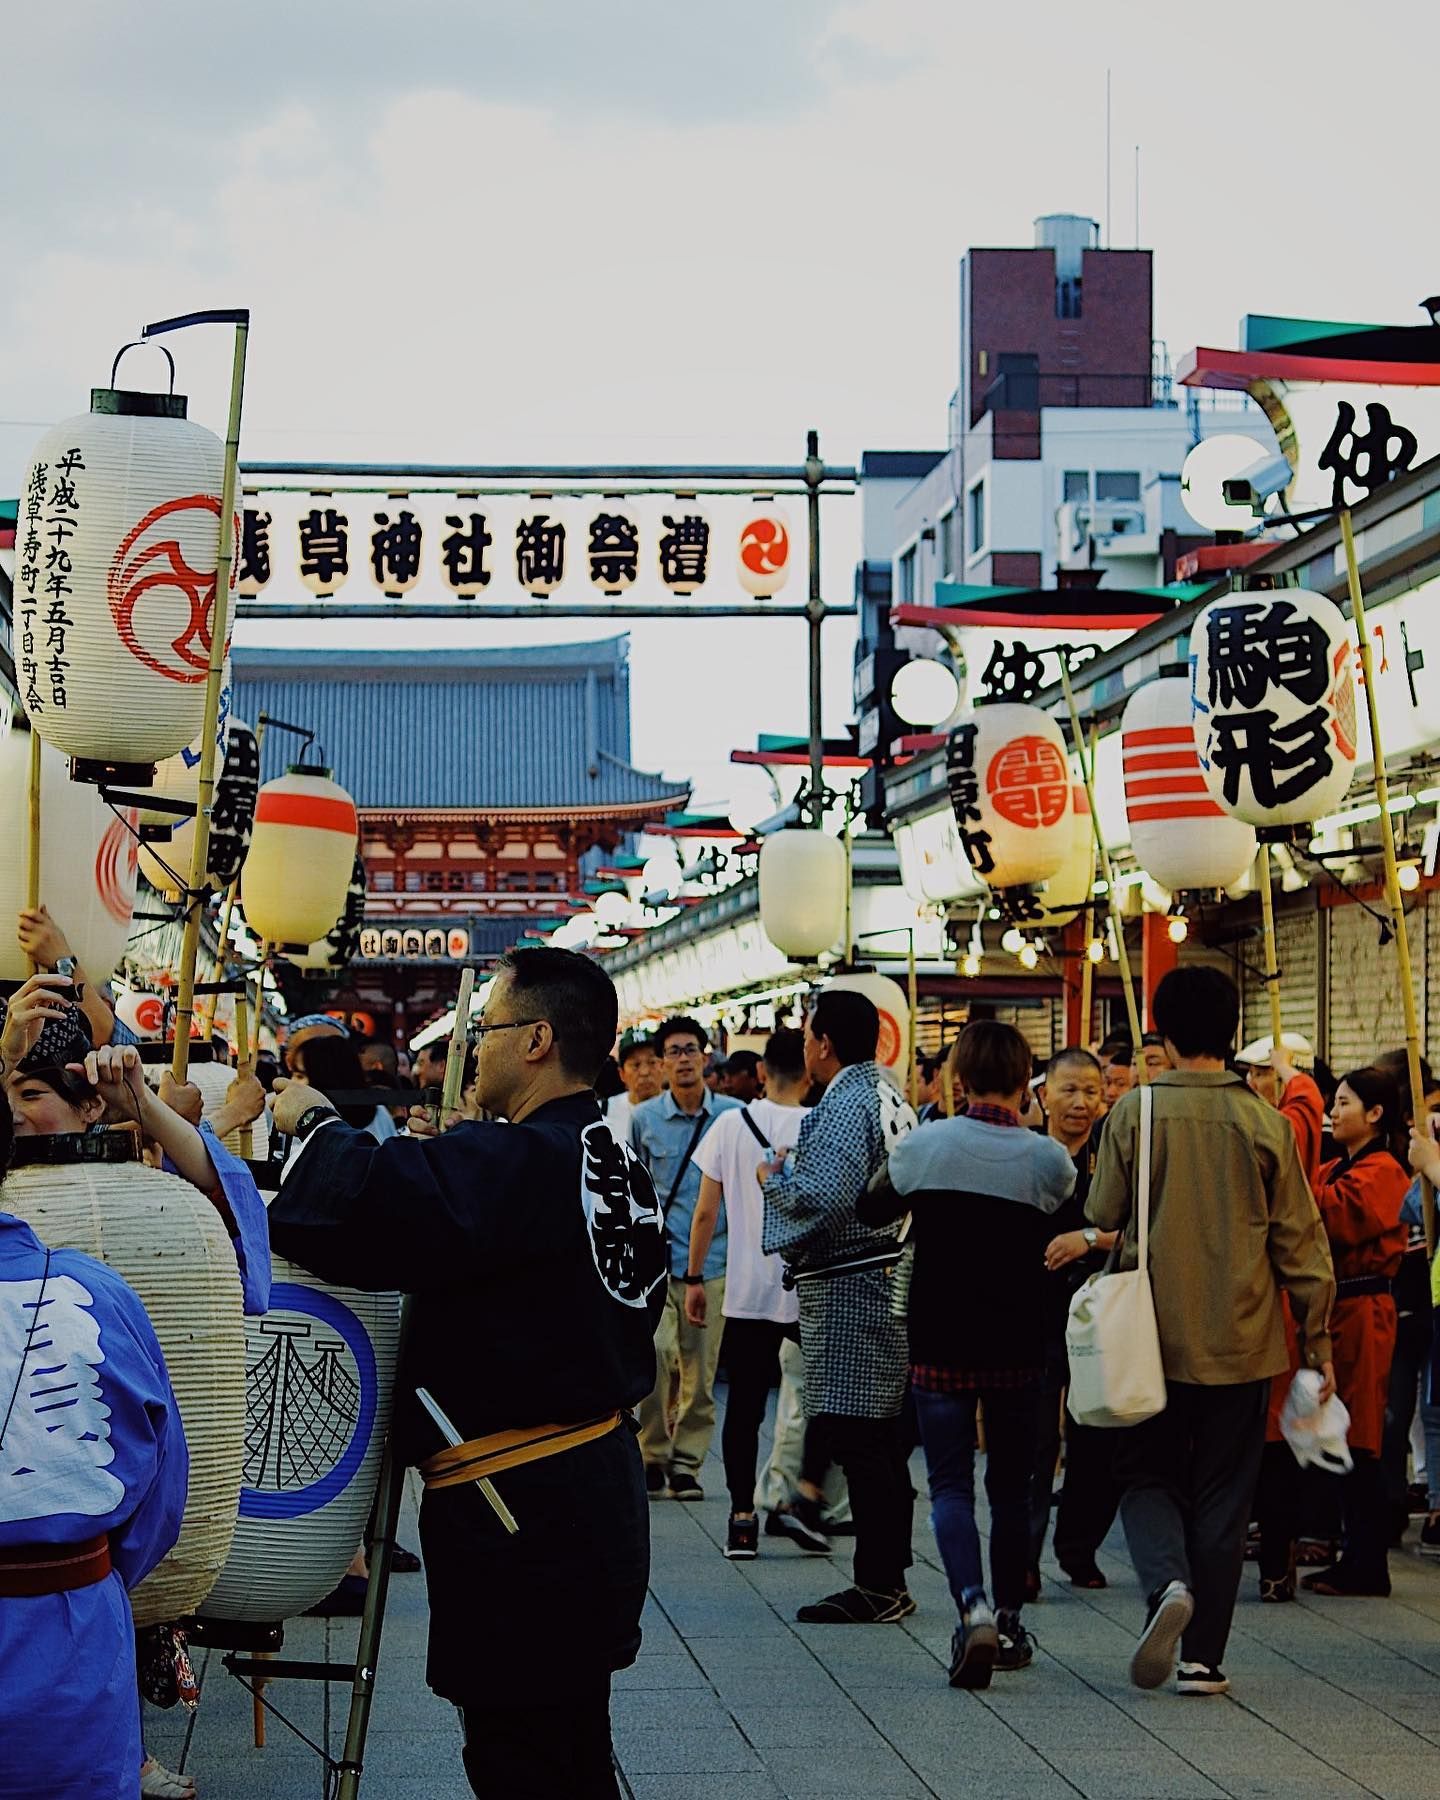 """This week's update from AOI Global: Sanja-matsuri, Asakusa, Tokyo   """"Sanja-Matsuri"""" is held in the middle of May every year. It is one of the three major festivals held in Tokyo!!     #filmmakersworld     #festival #whenintokyo"""